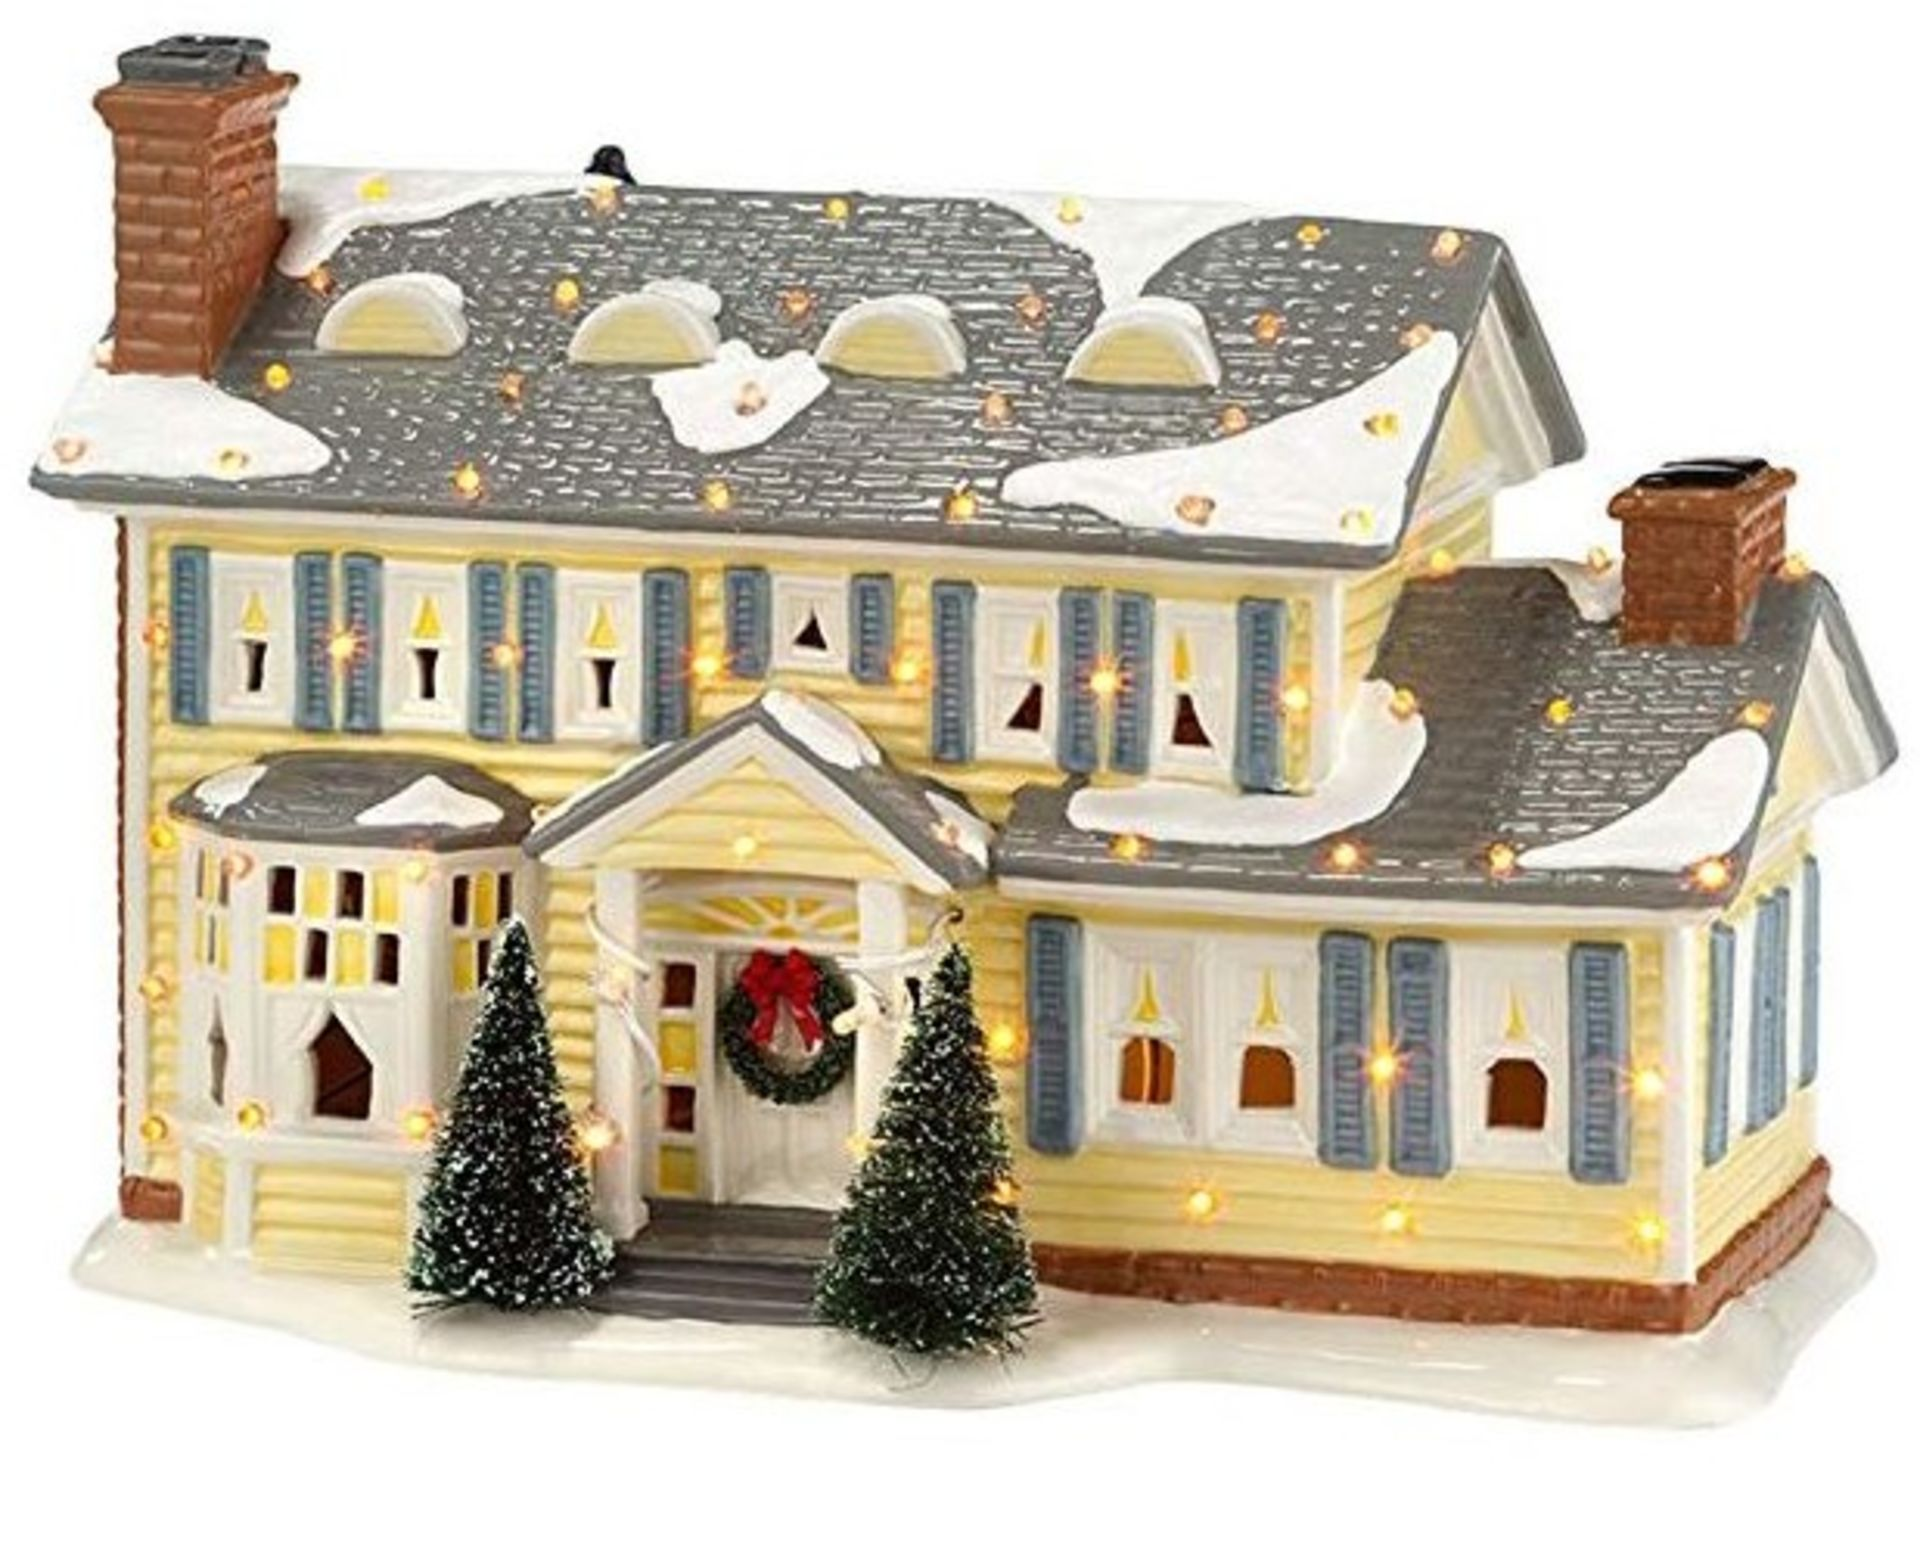 Holiday Update + The Griswold's Christmas House is For Sale!